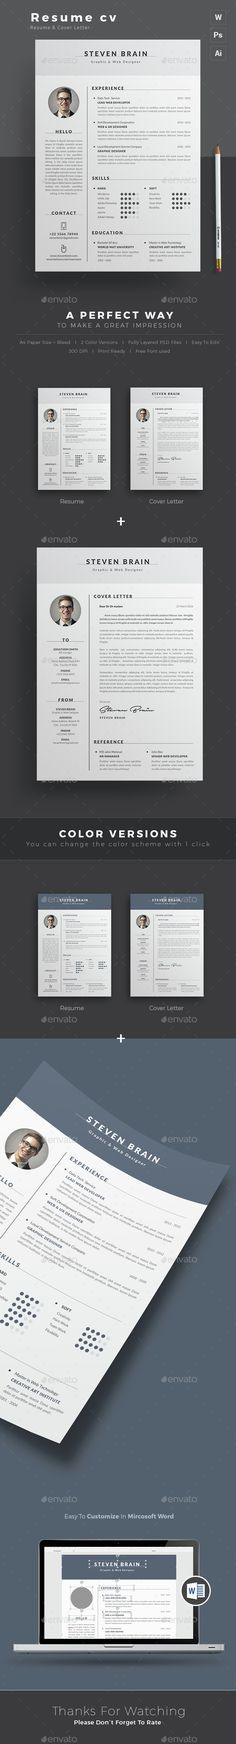 30 best creative\/fashion cvu0027s images on Pinterest Resume cv, Cv - buy resume templates